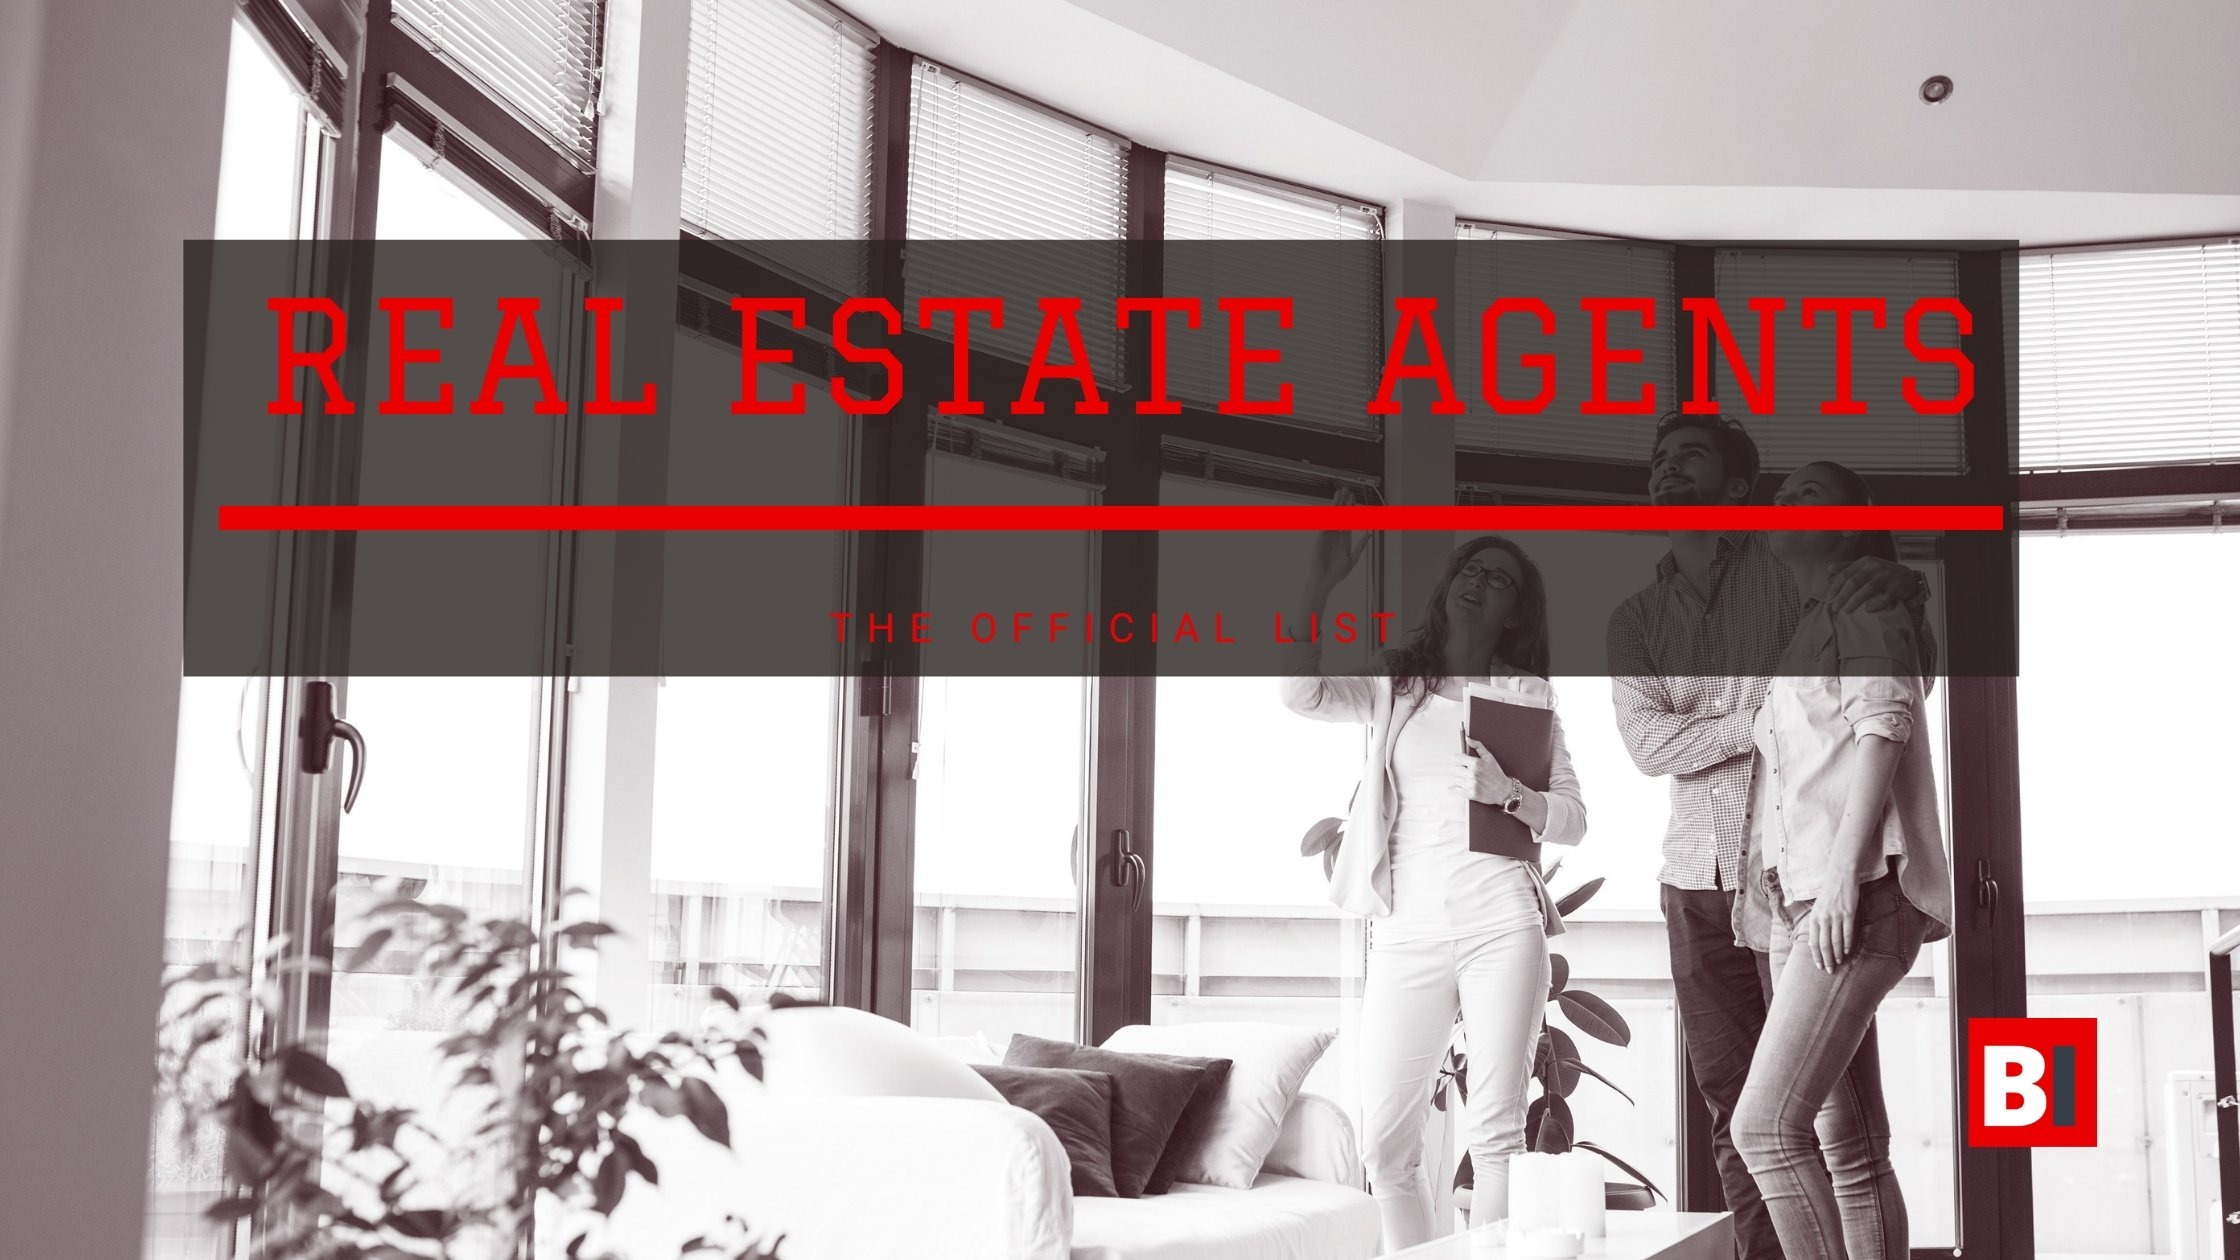 Best Books on Real Estate Agents